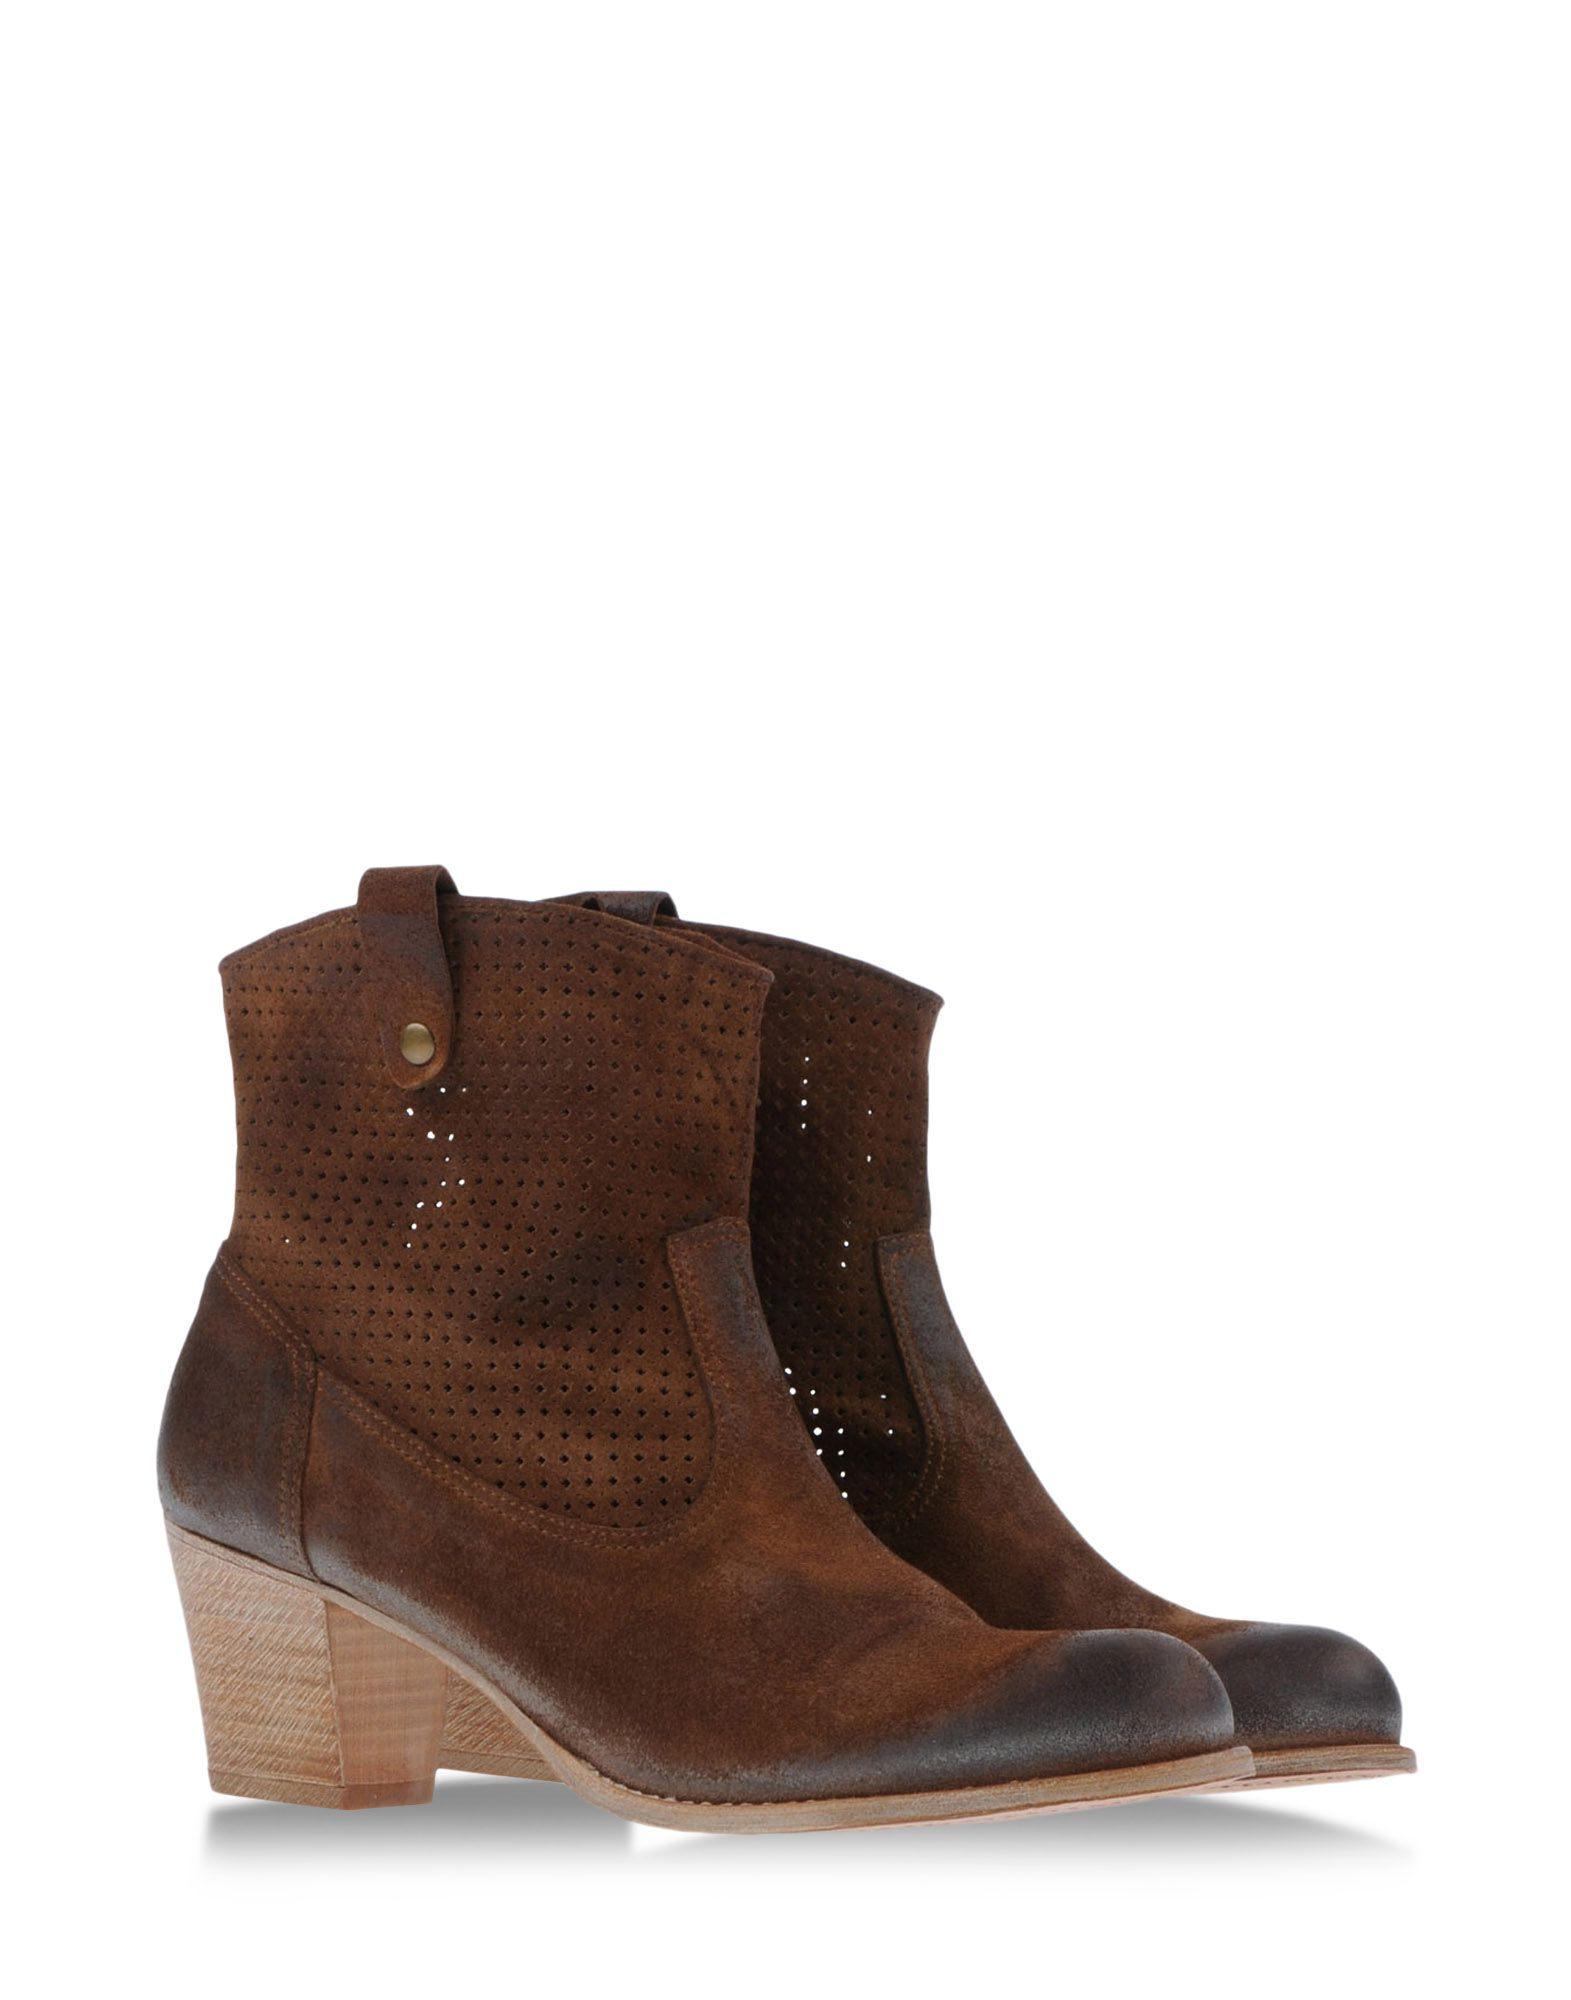 ndc ankle boots in brown khaki lyst